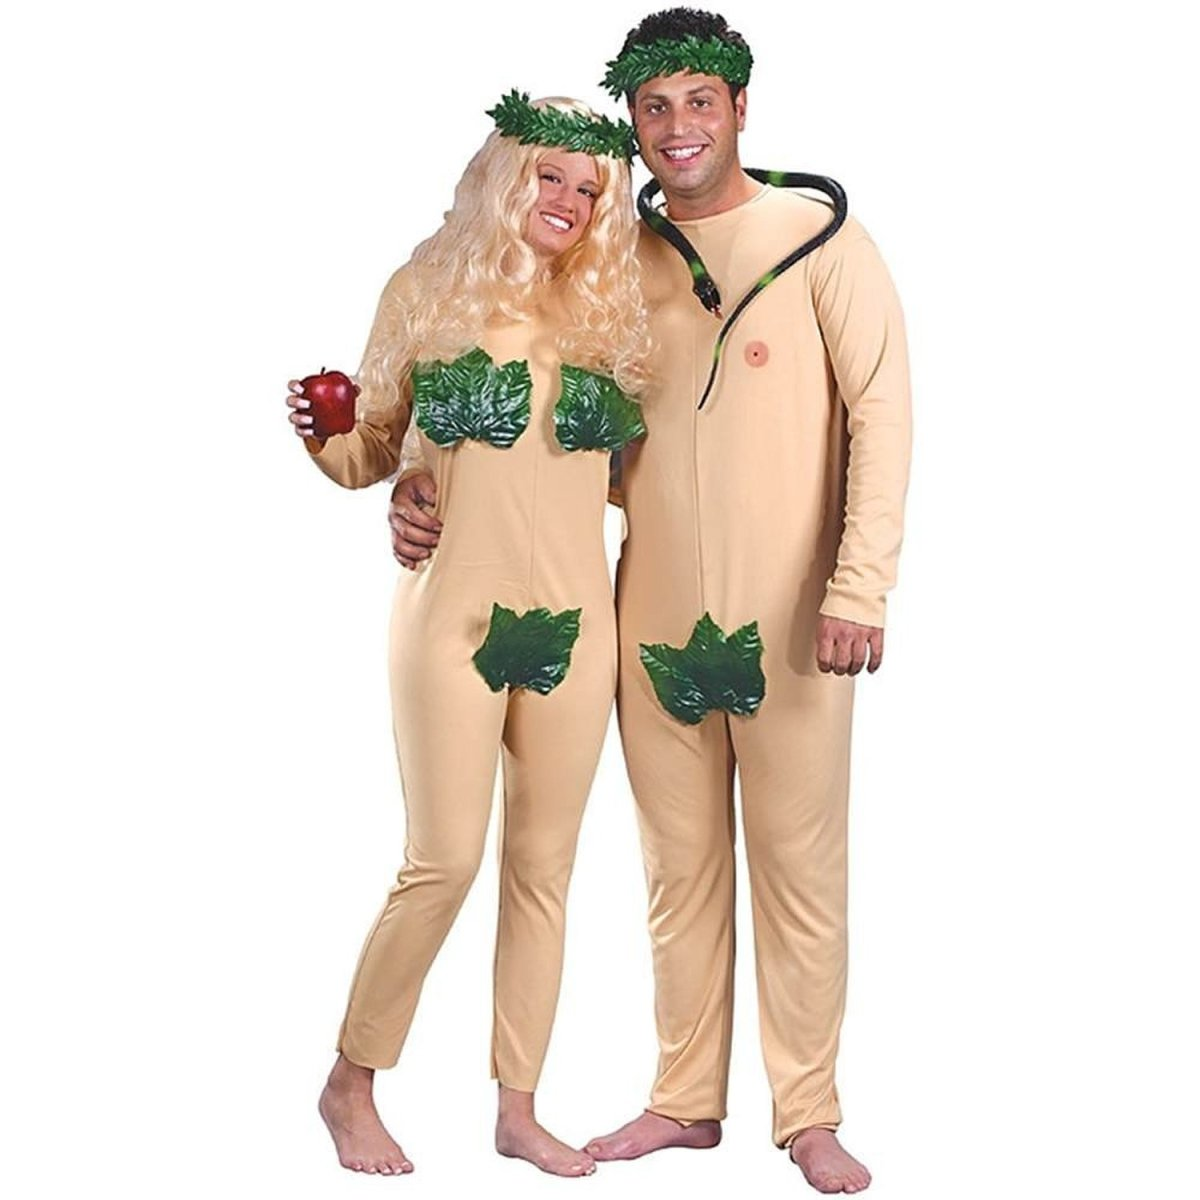 Adam and Eve costume  sc 1 st  Holidappy & Costumes for a Song Title Theme Party | Holidappy